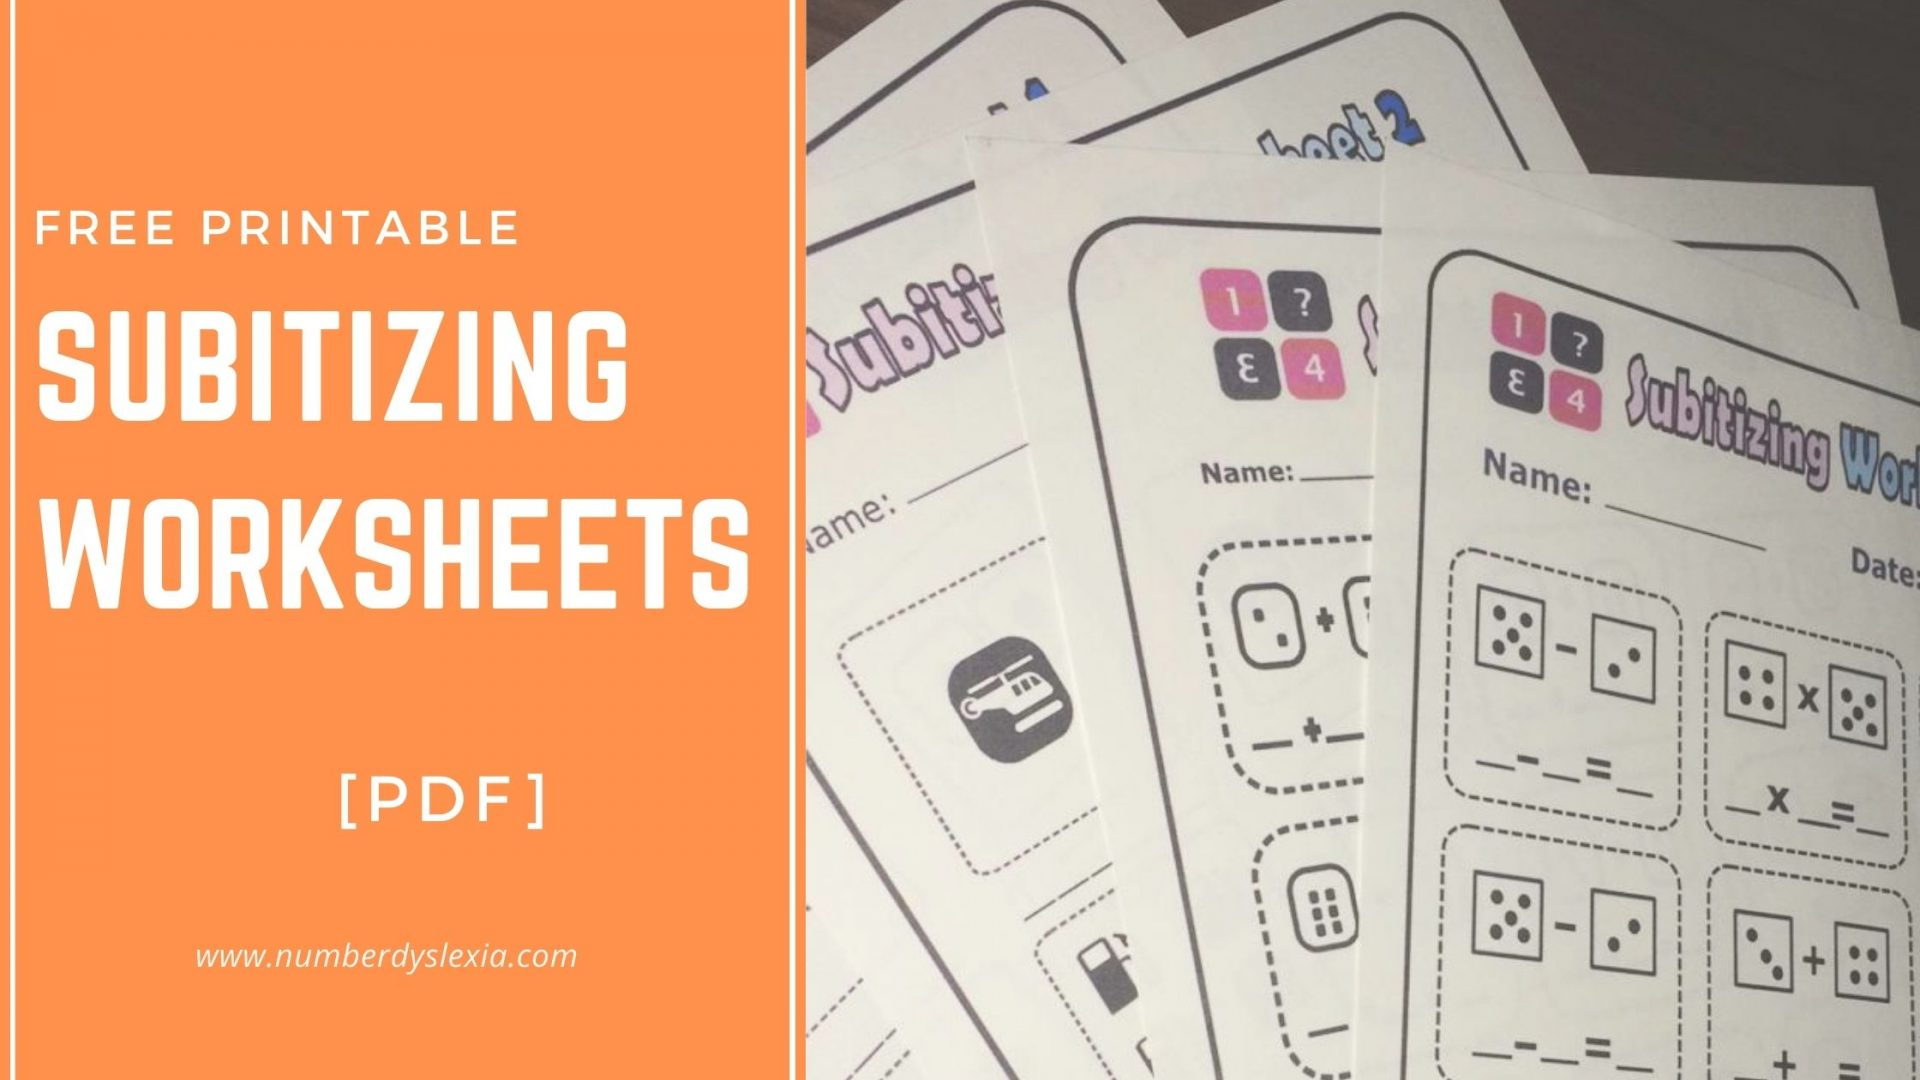 Free Printable Subitizing Worksheets For Practice